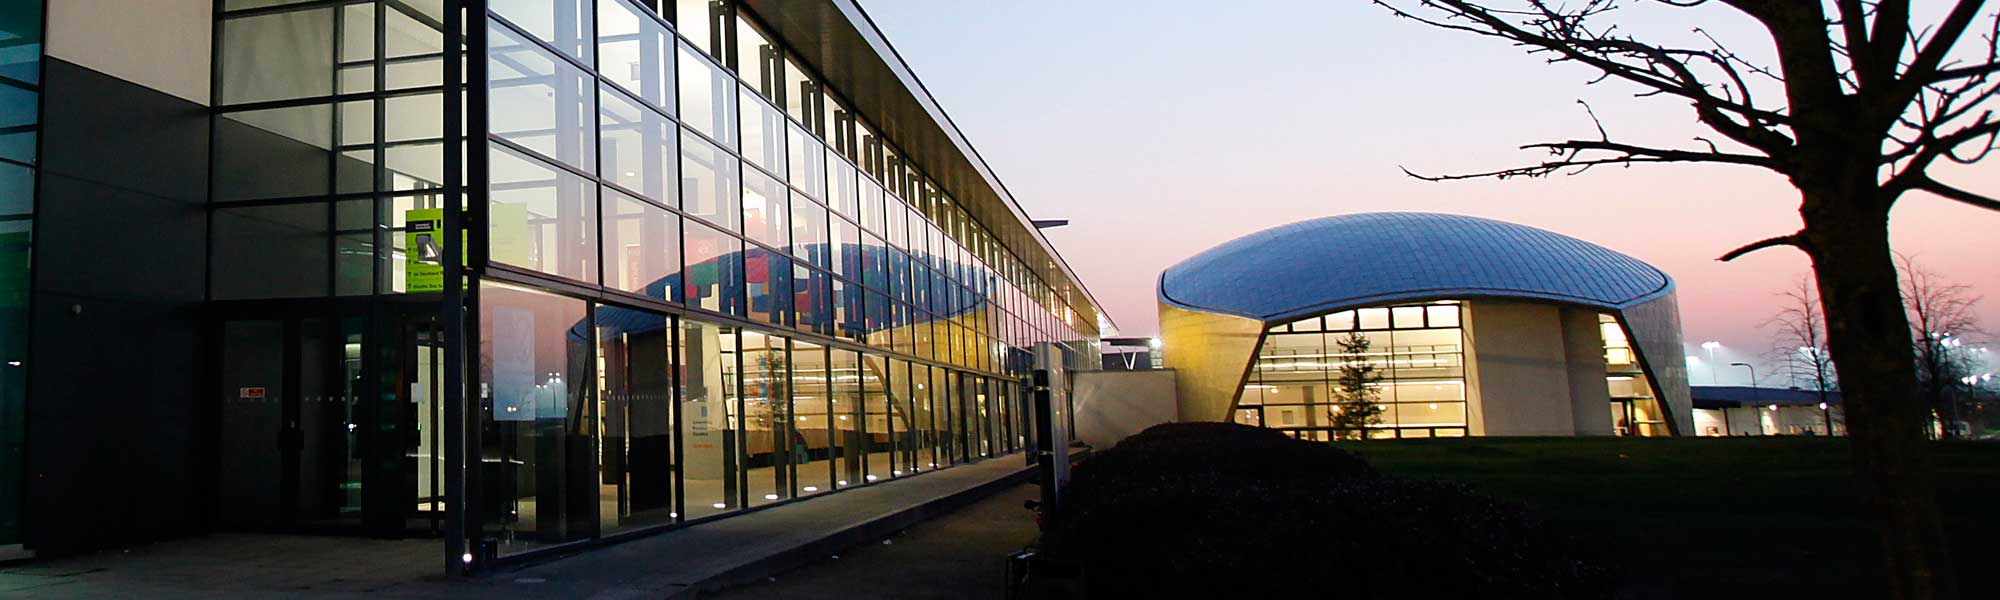 The Weston Auditorium, de Havilland campus